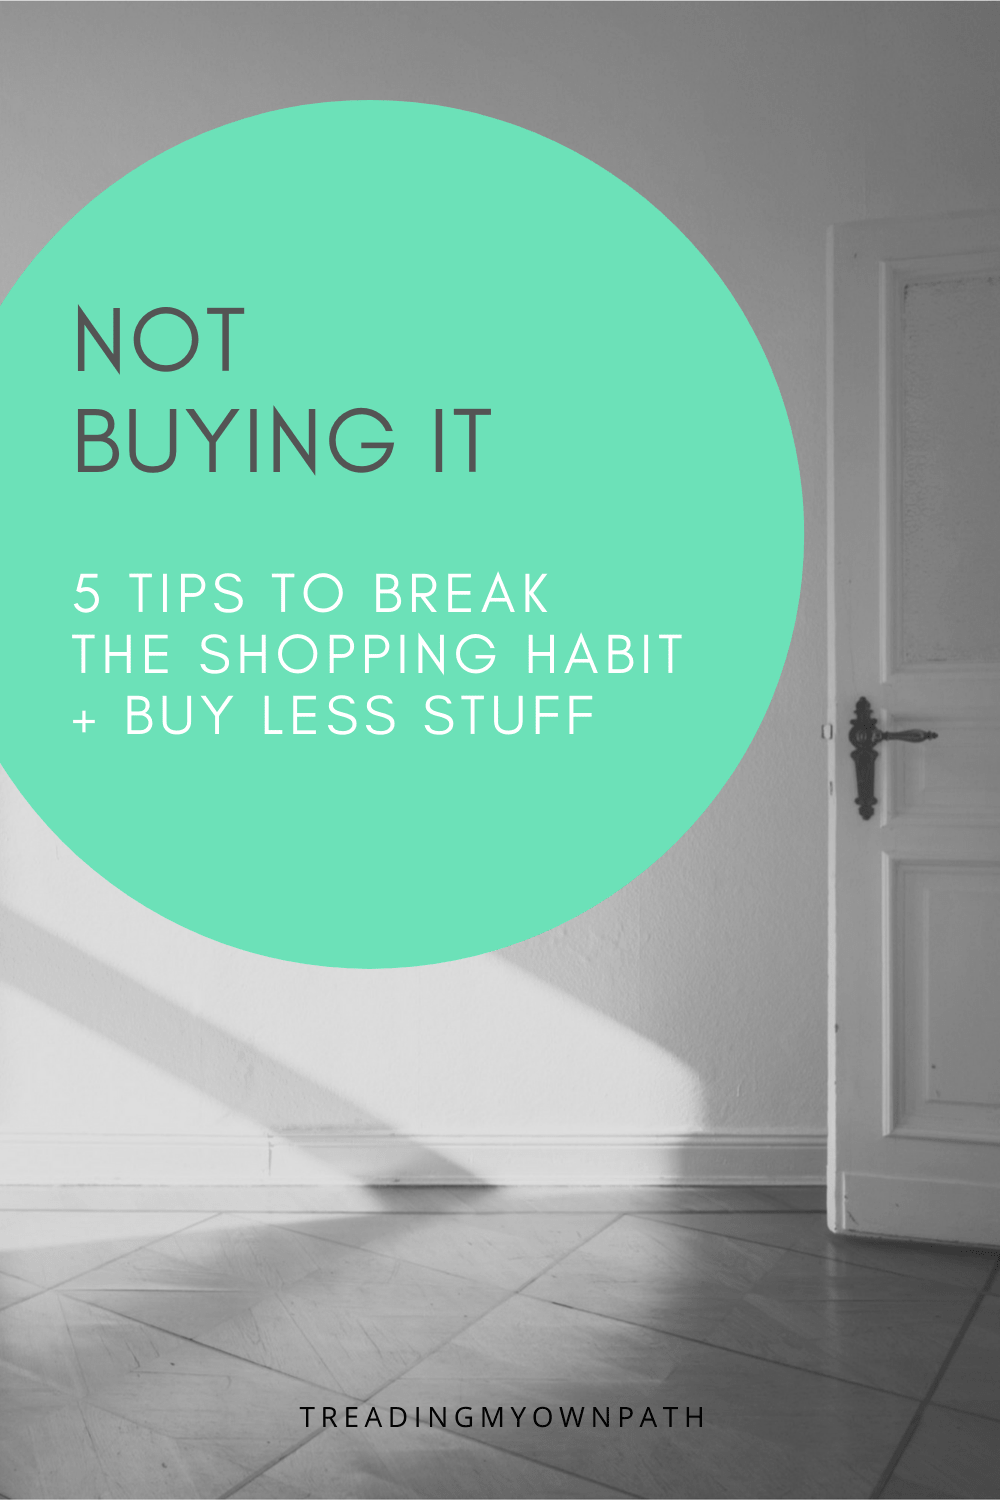 Not buying it: 5 tips for buying less stuff